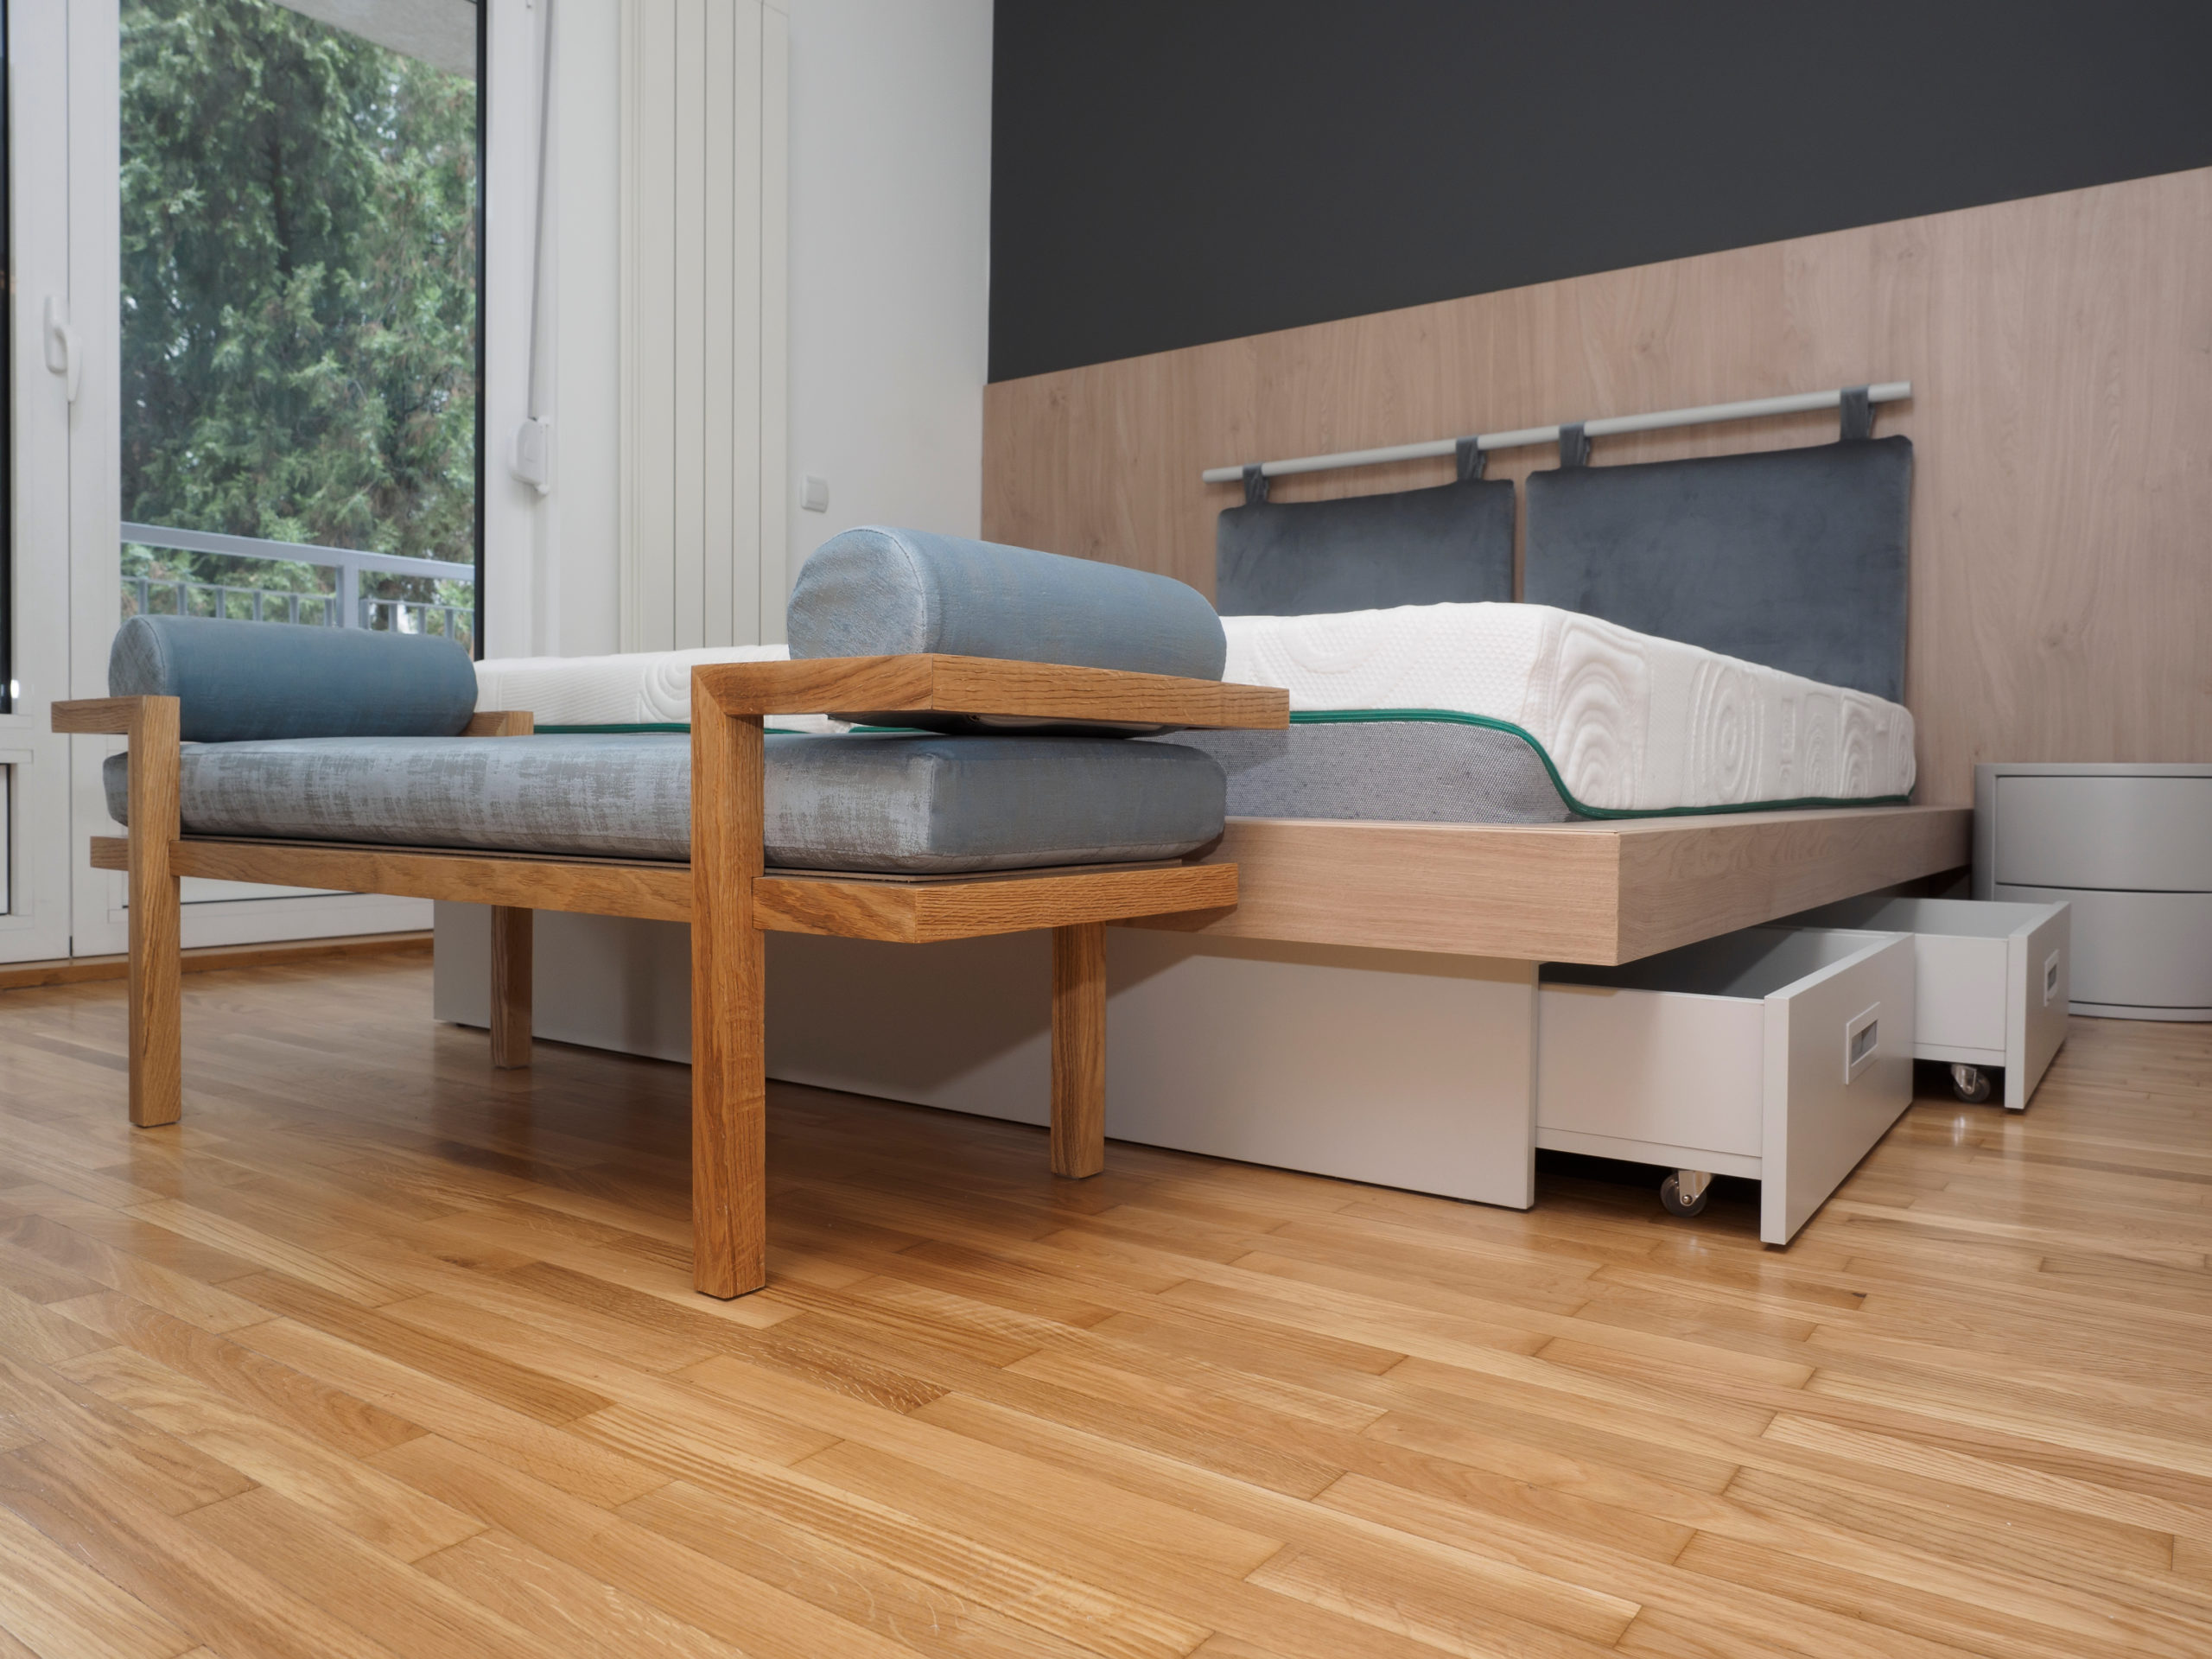 Tiny Home Storage Bed